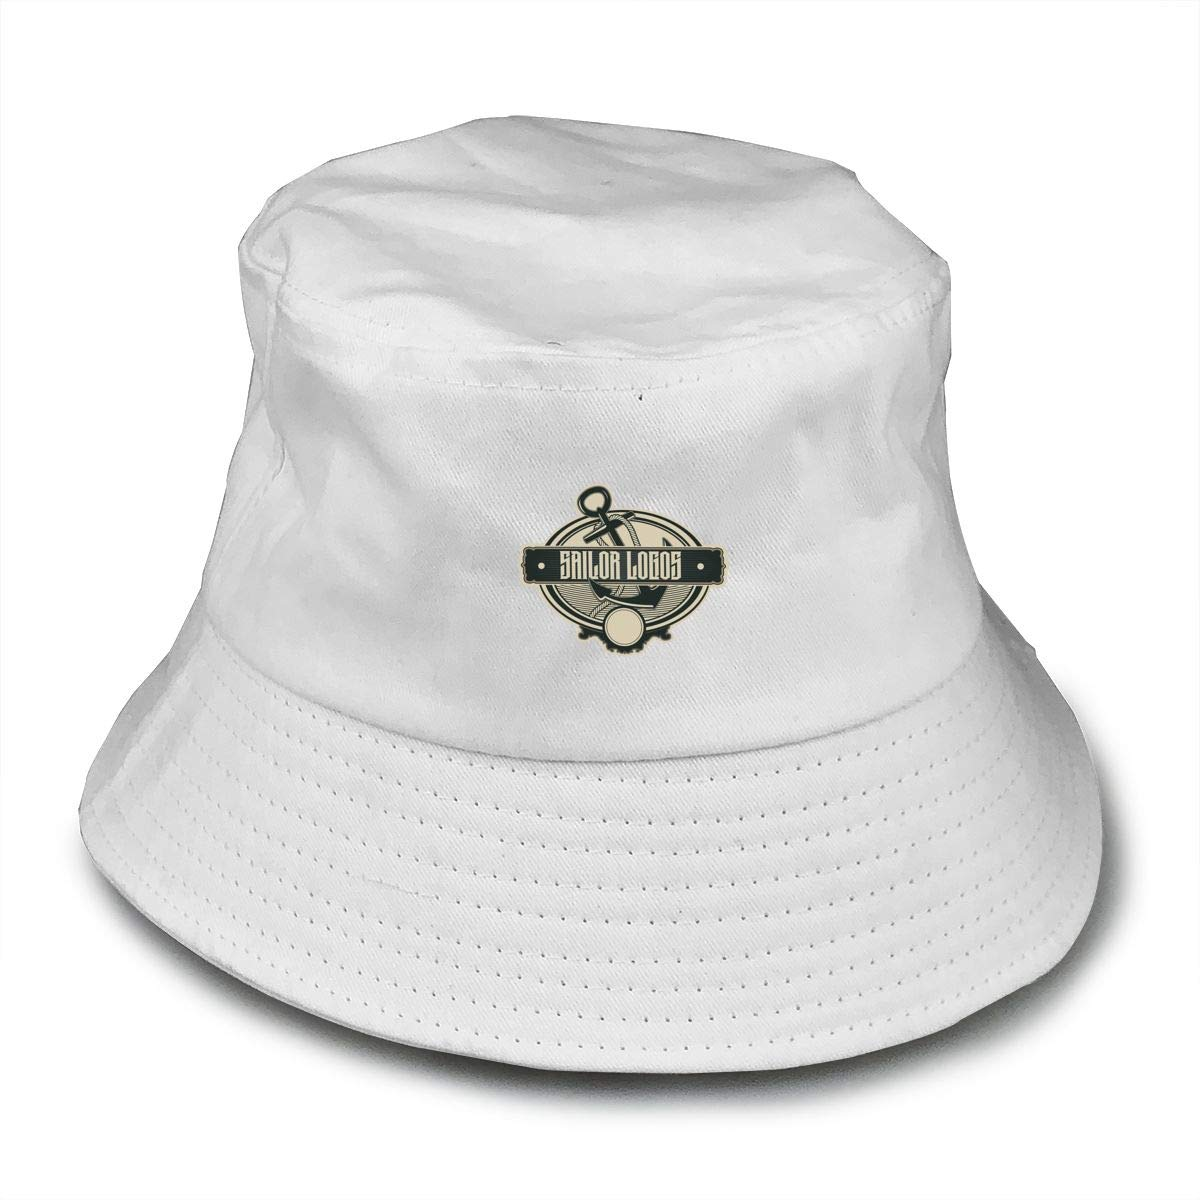 NDFGR Nautical Sign Unisex Cotton Packable Black Travel Bucket Hat Fishing Cap